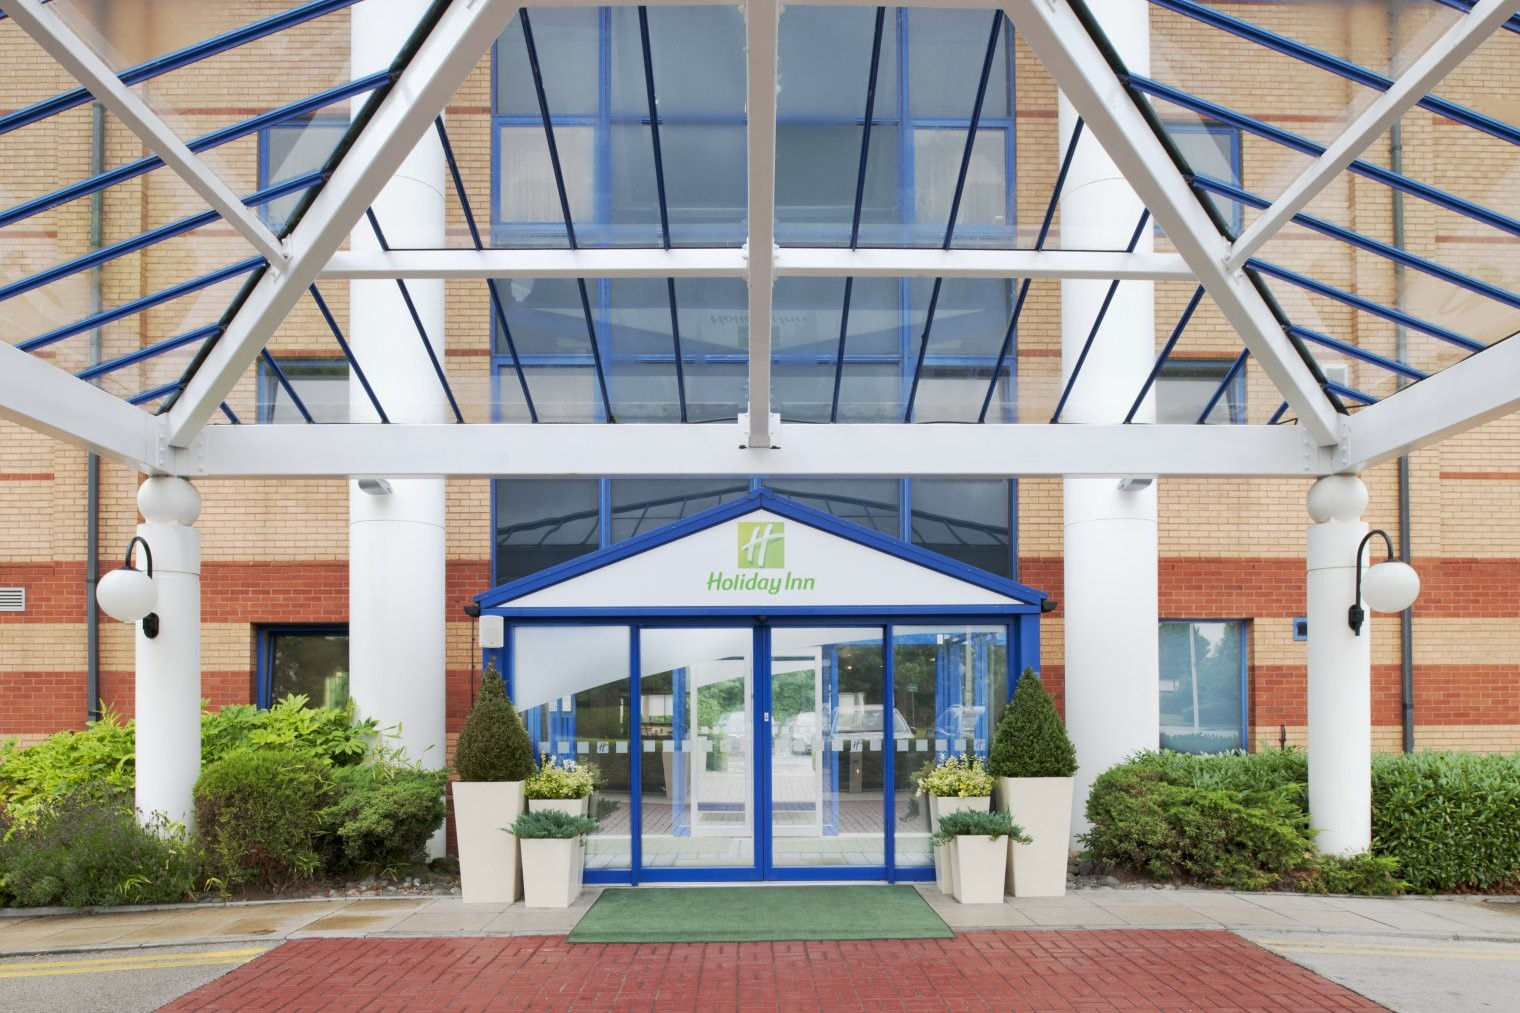 Picture of Holiday Inn Warrington